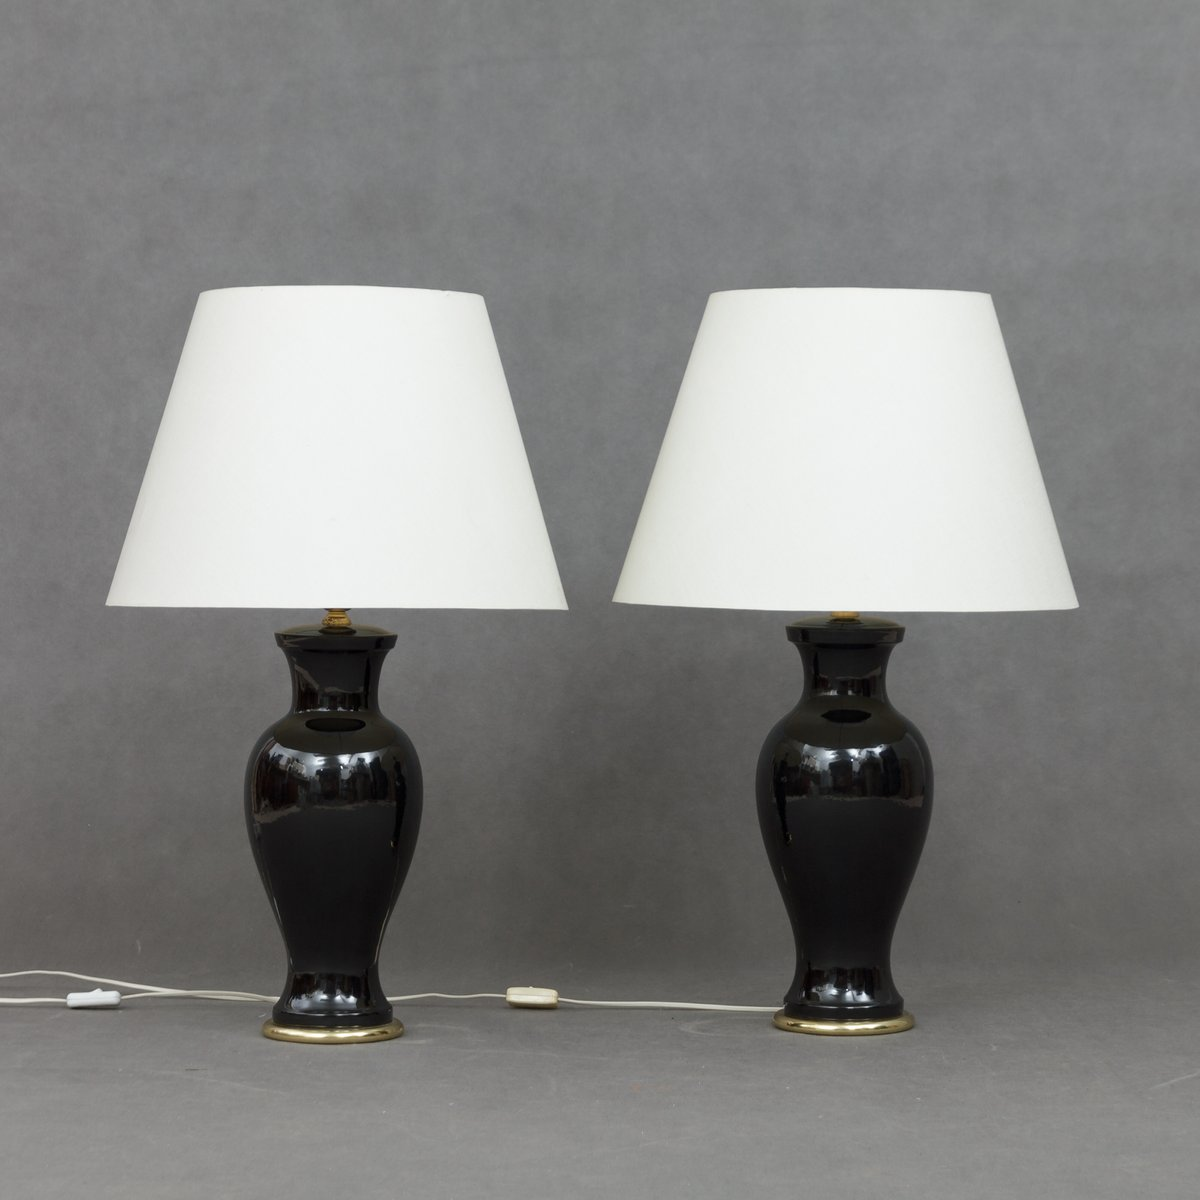 High Quality Vintage Italian Table Lamps, Set Of 2